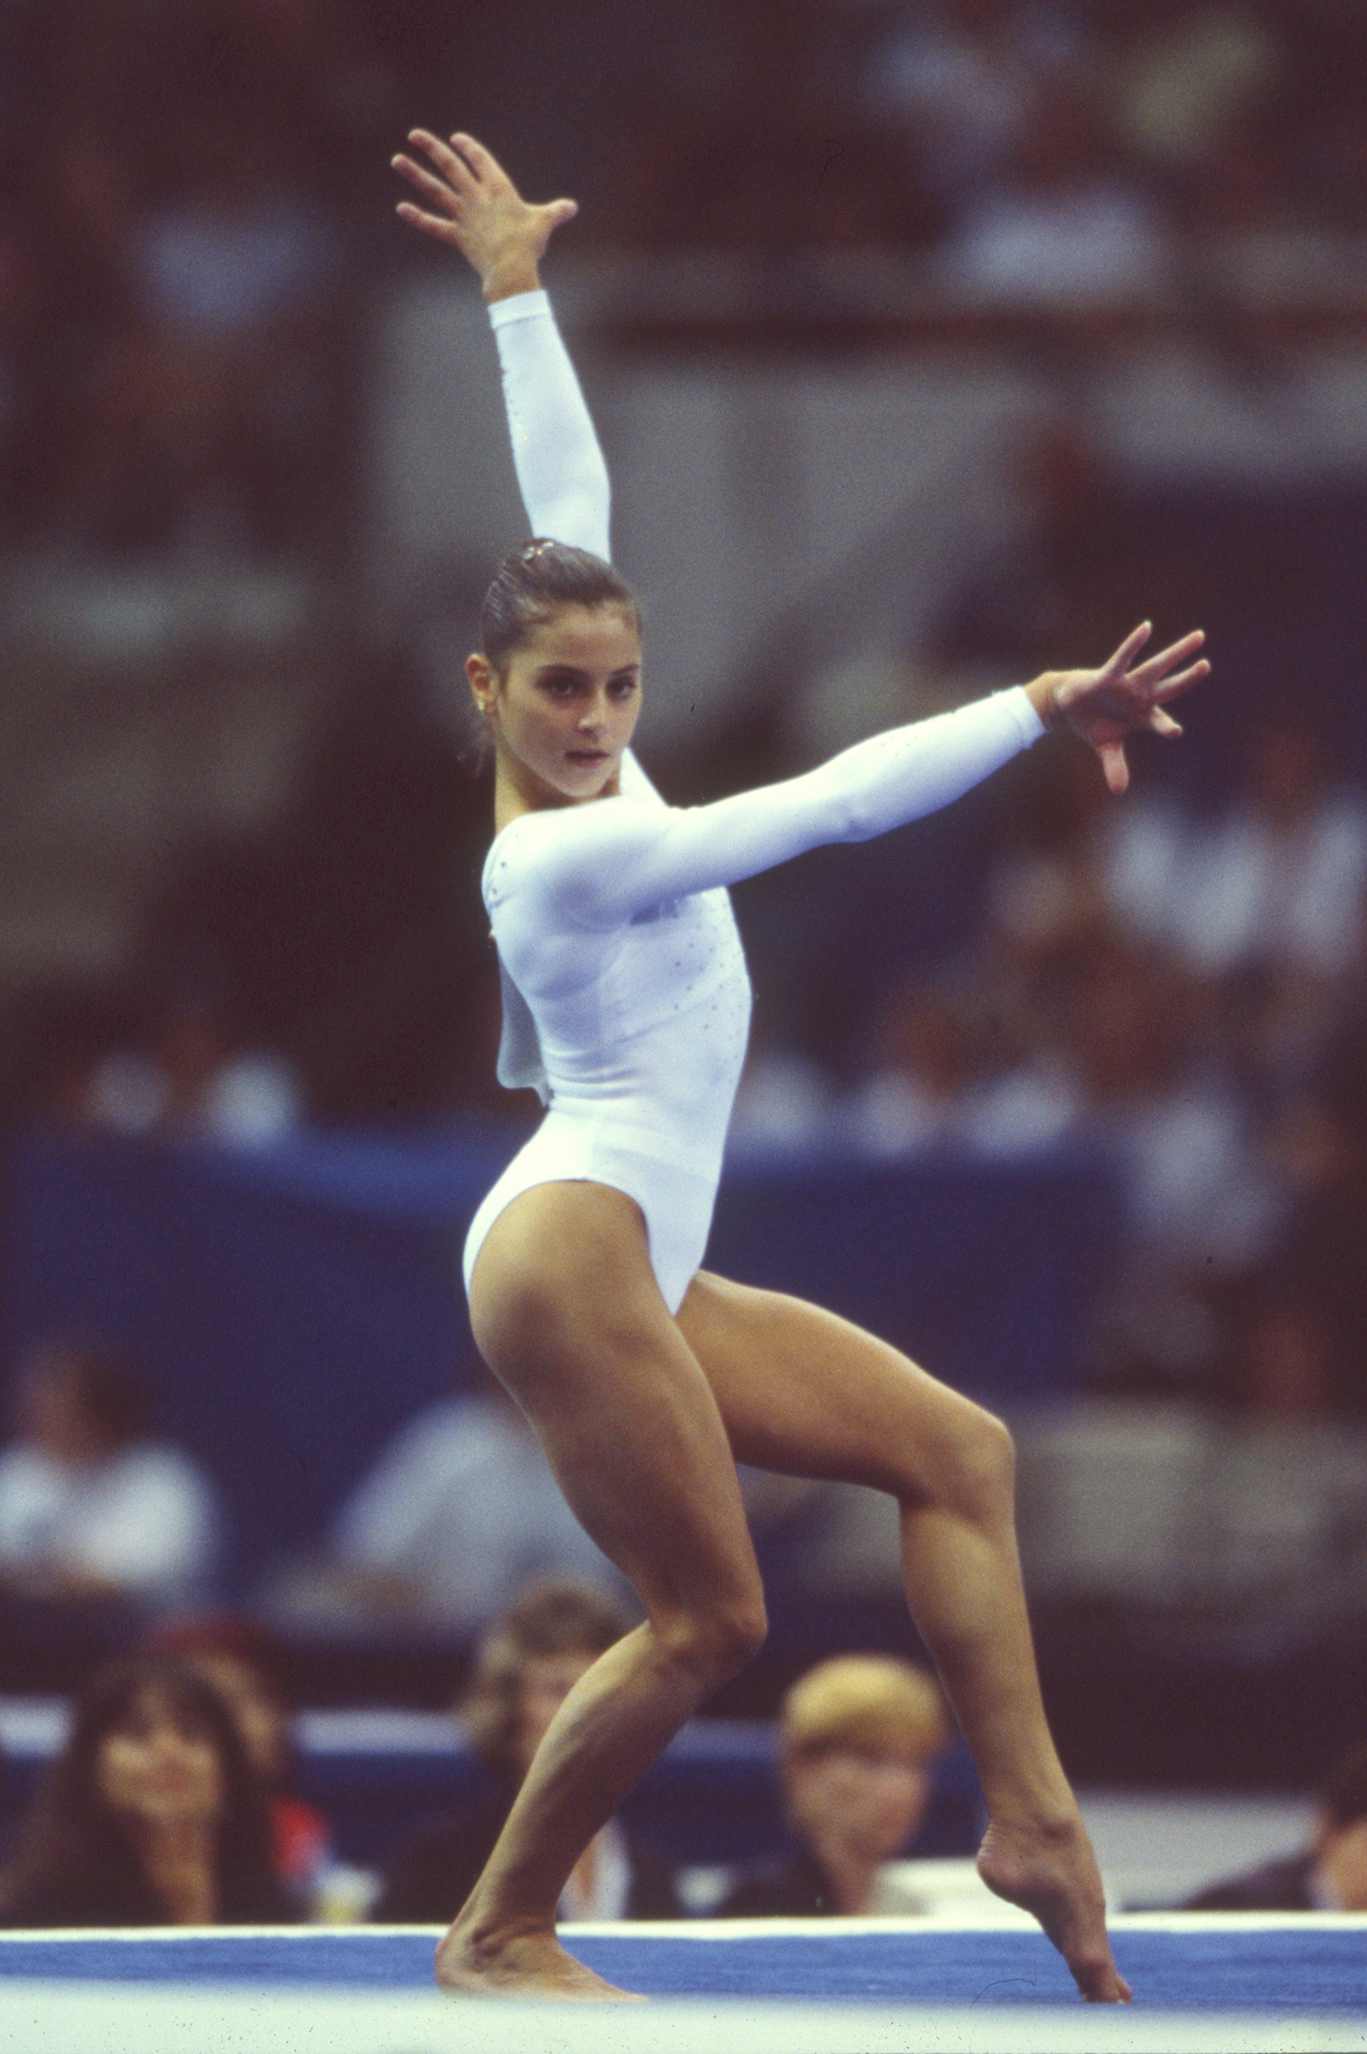 Photo Credit: International Gymnast Magazine/Dave Black